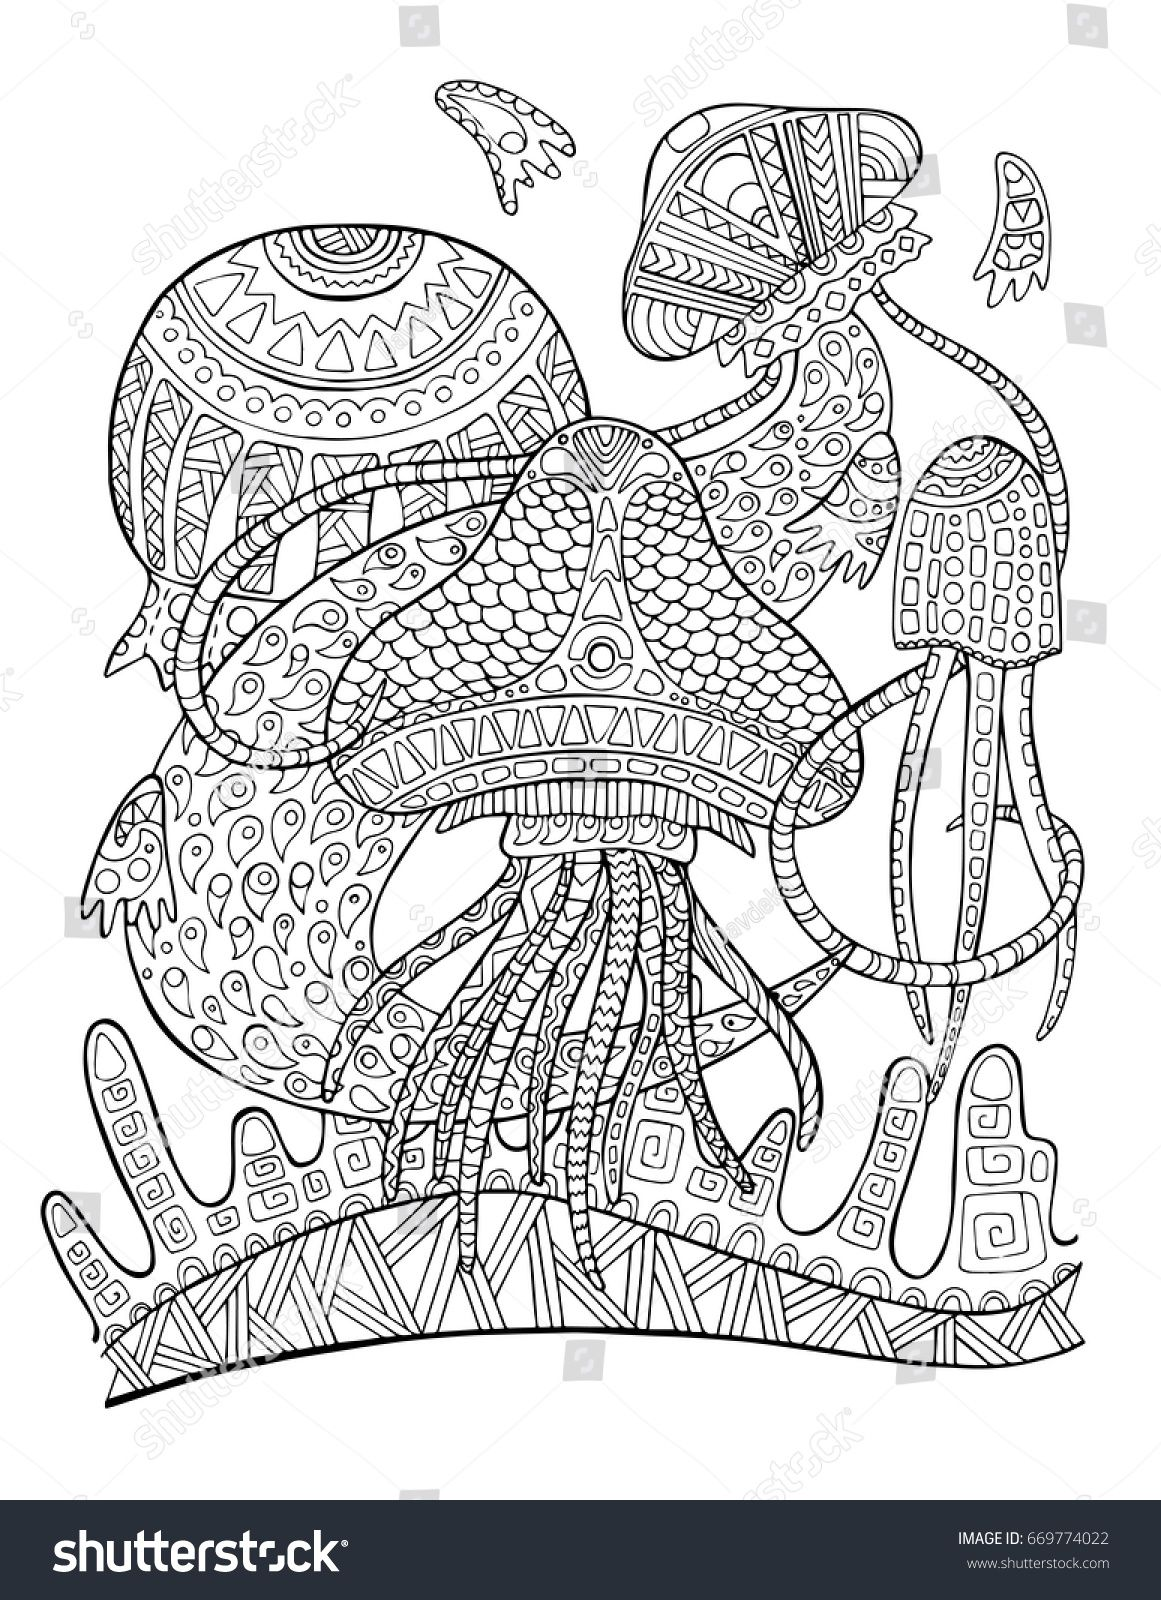 Jellyfish Underwater Coloring Page. Tropical Fish Doodle Vector  Illustration. Exotic Animal Coloring Page For